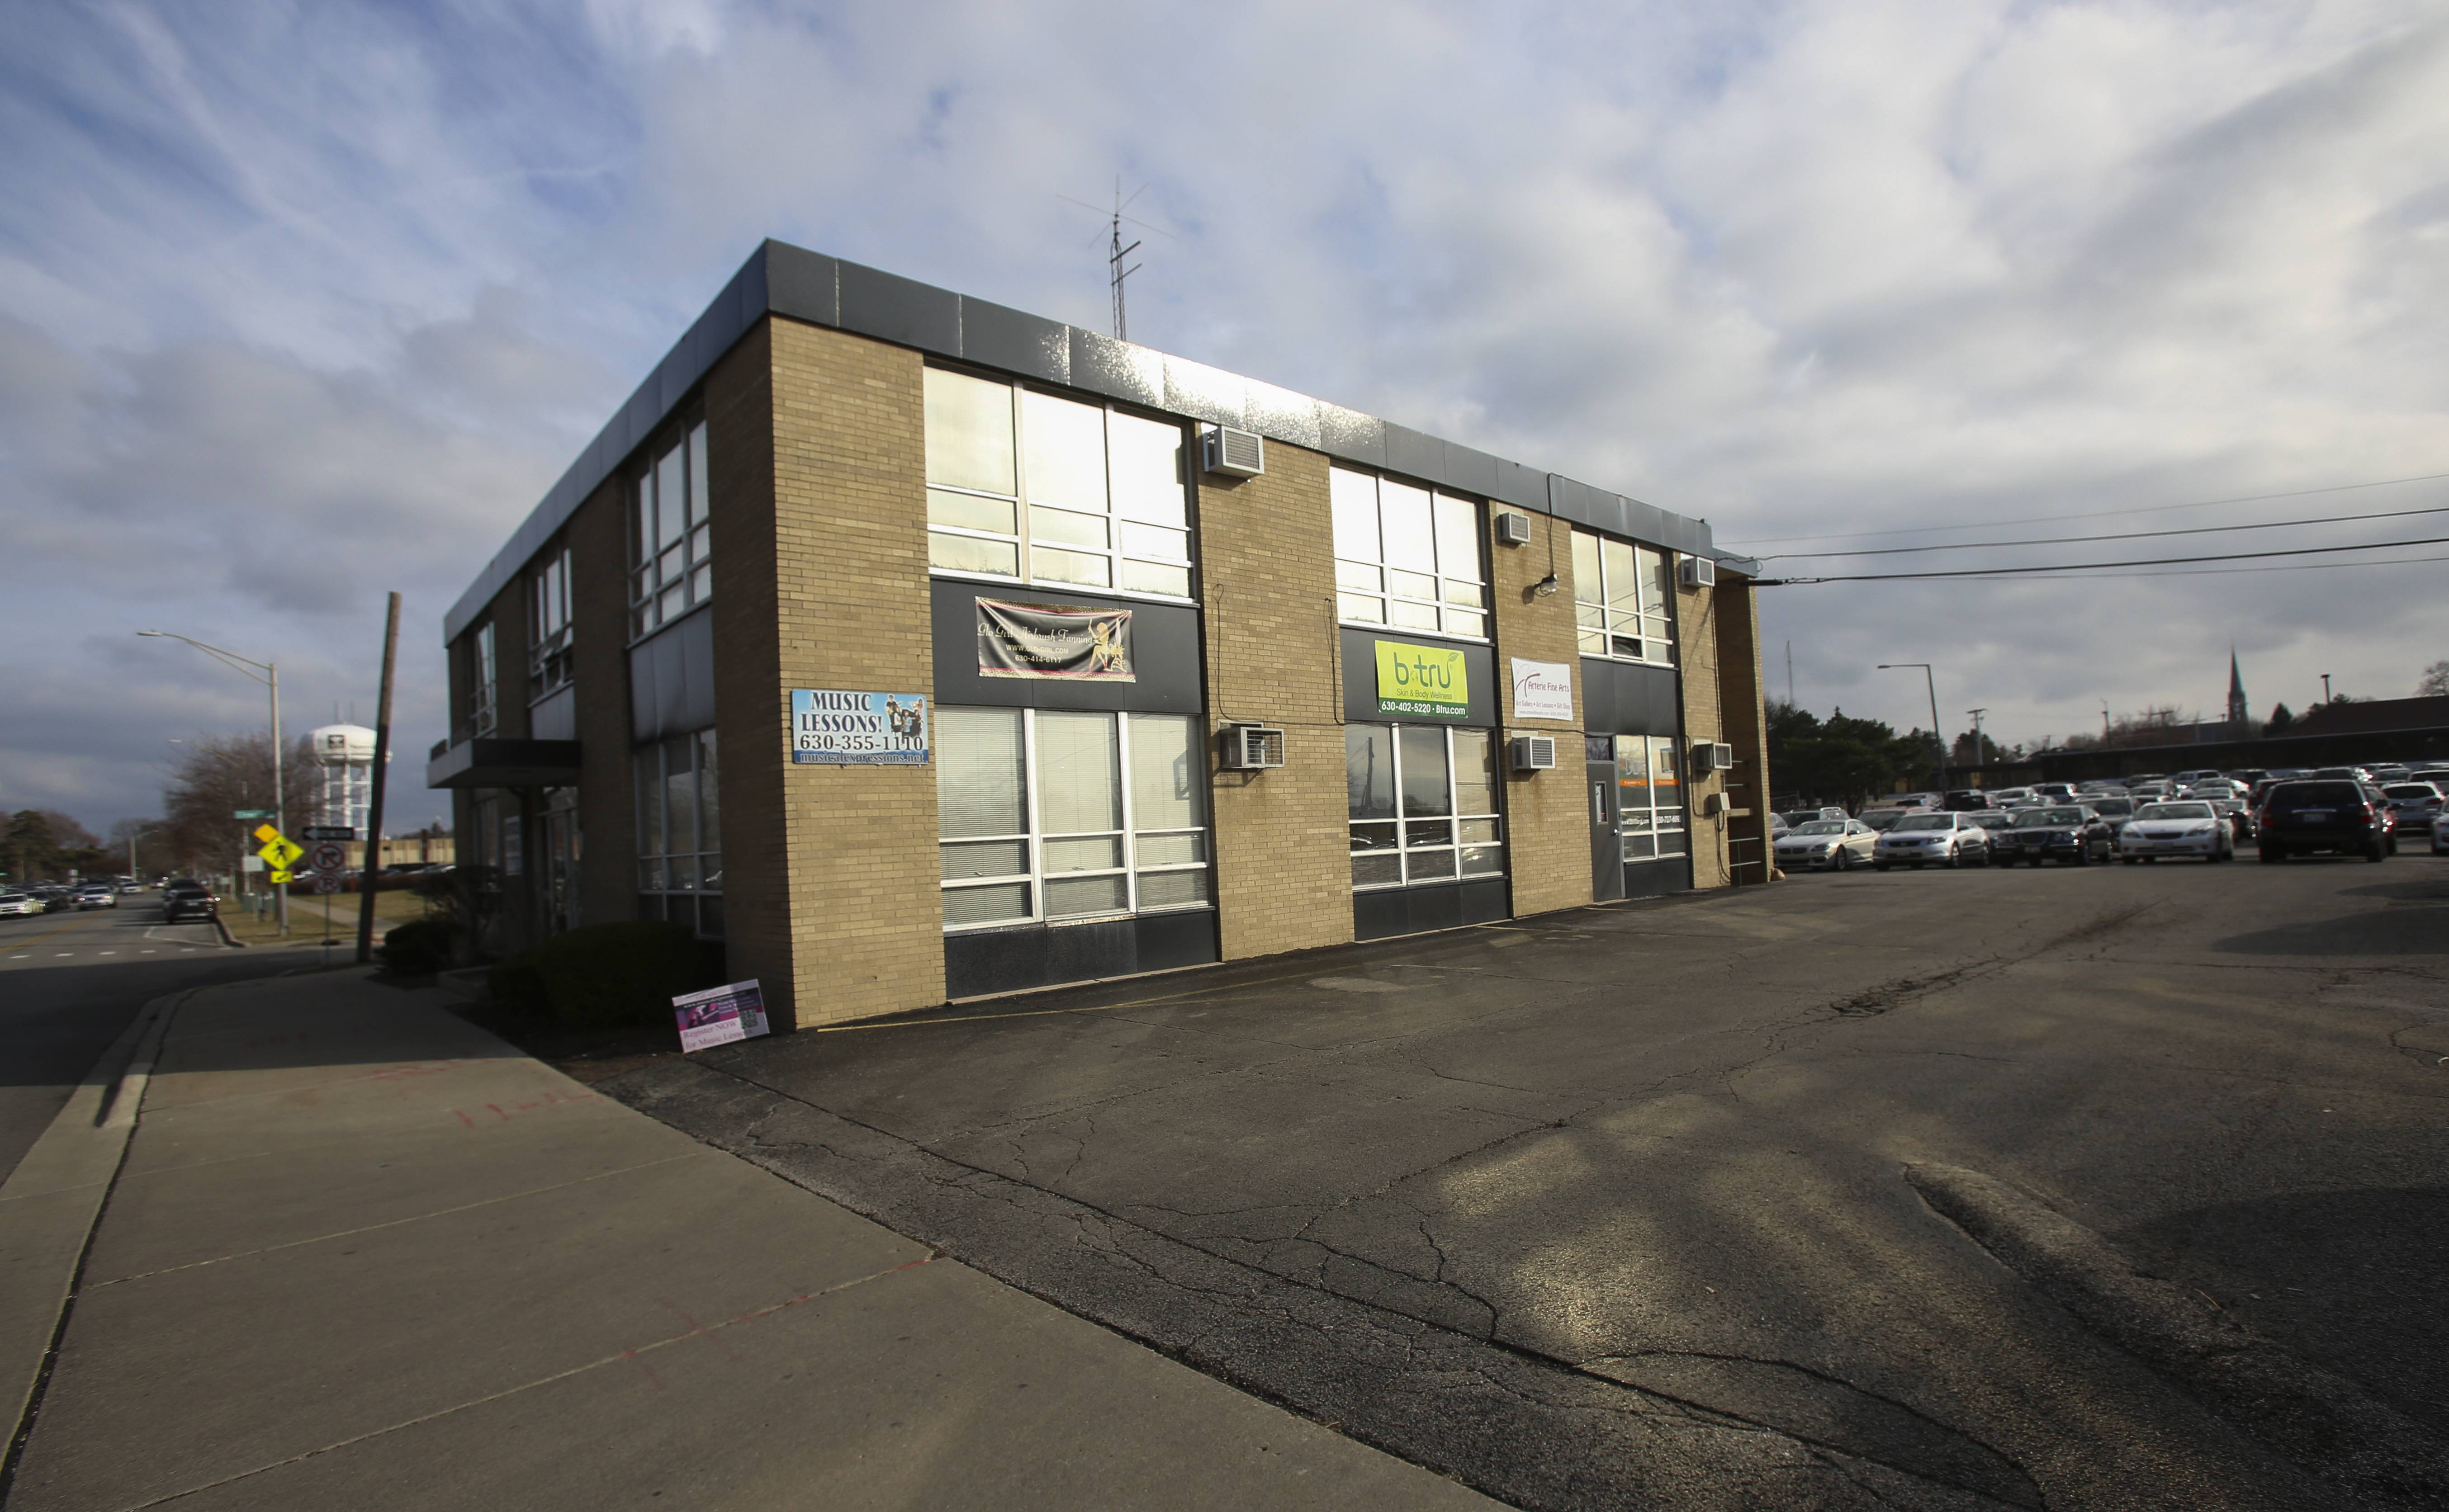 Naperville City Council will issue a request for qualifications to gather redevelopment ideas for several city-owned properties near the 5th Avenue Metra station, including this building housing businesses at 190 E. 5th Avenue.